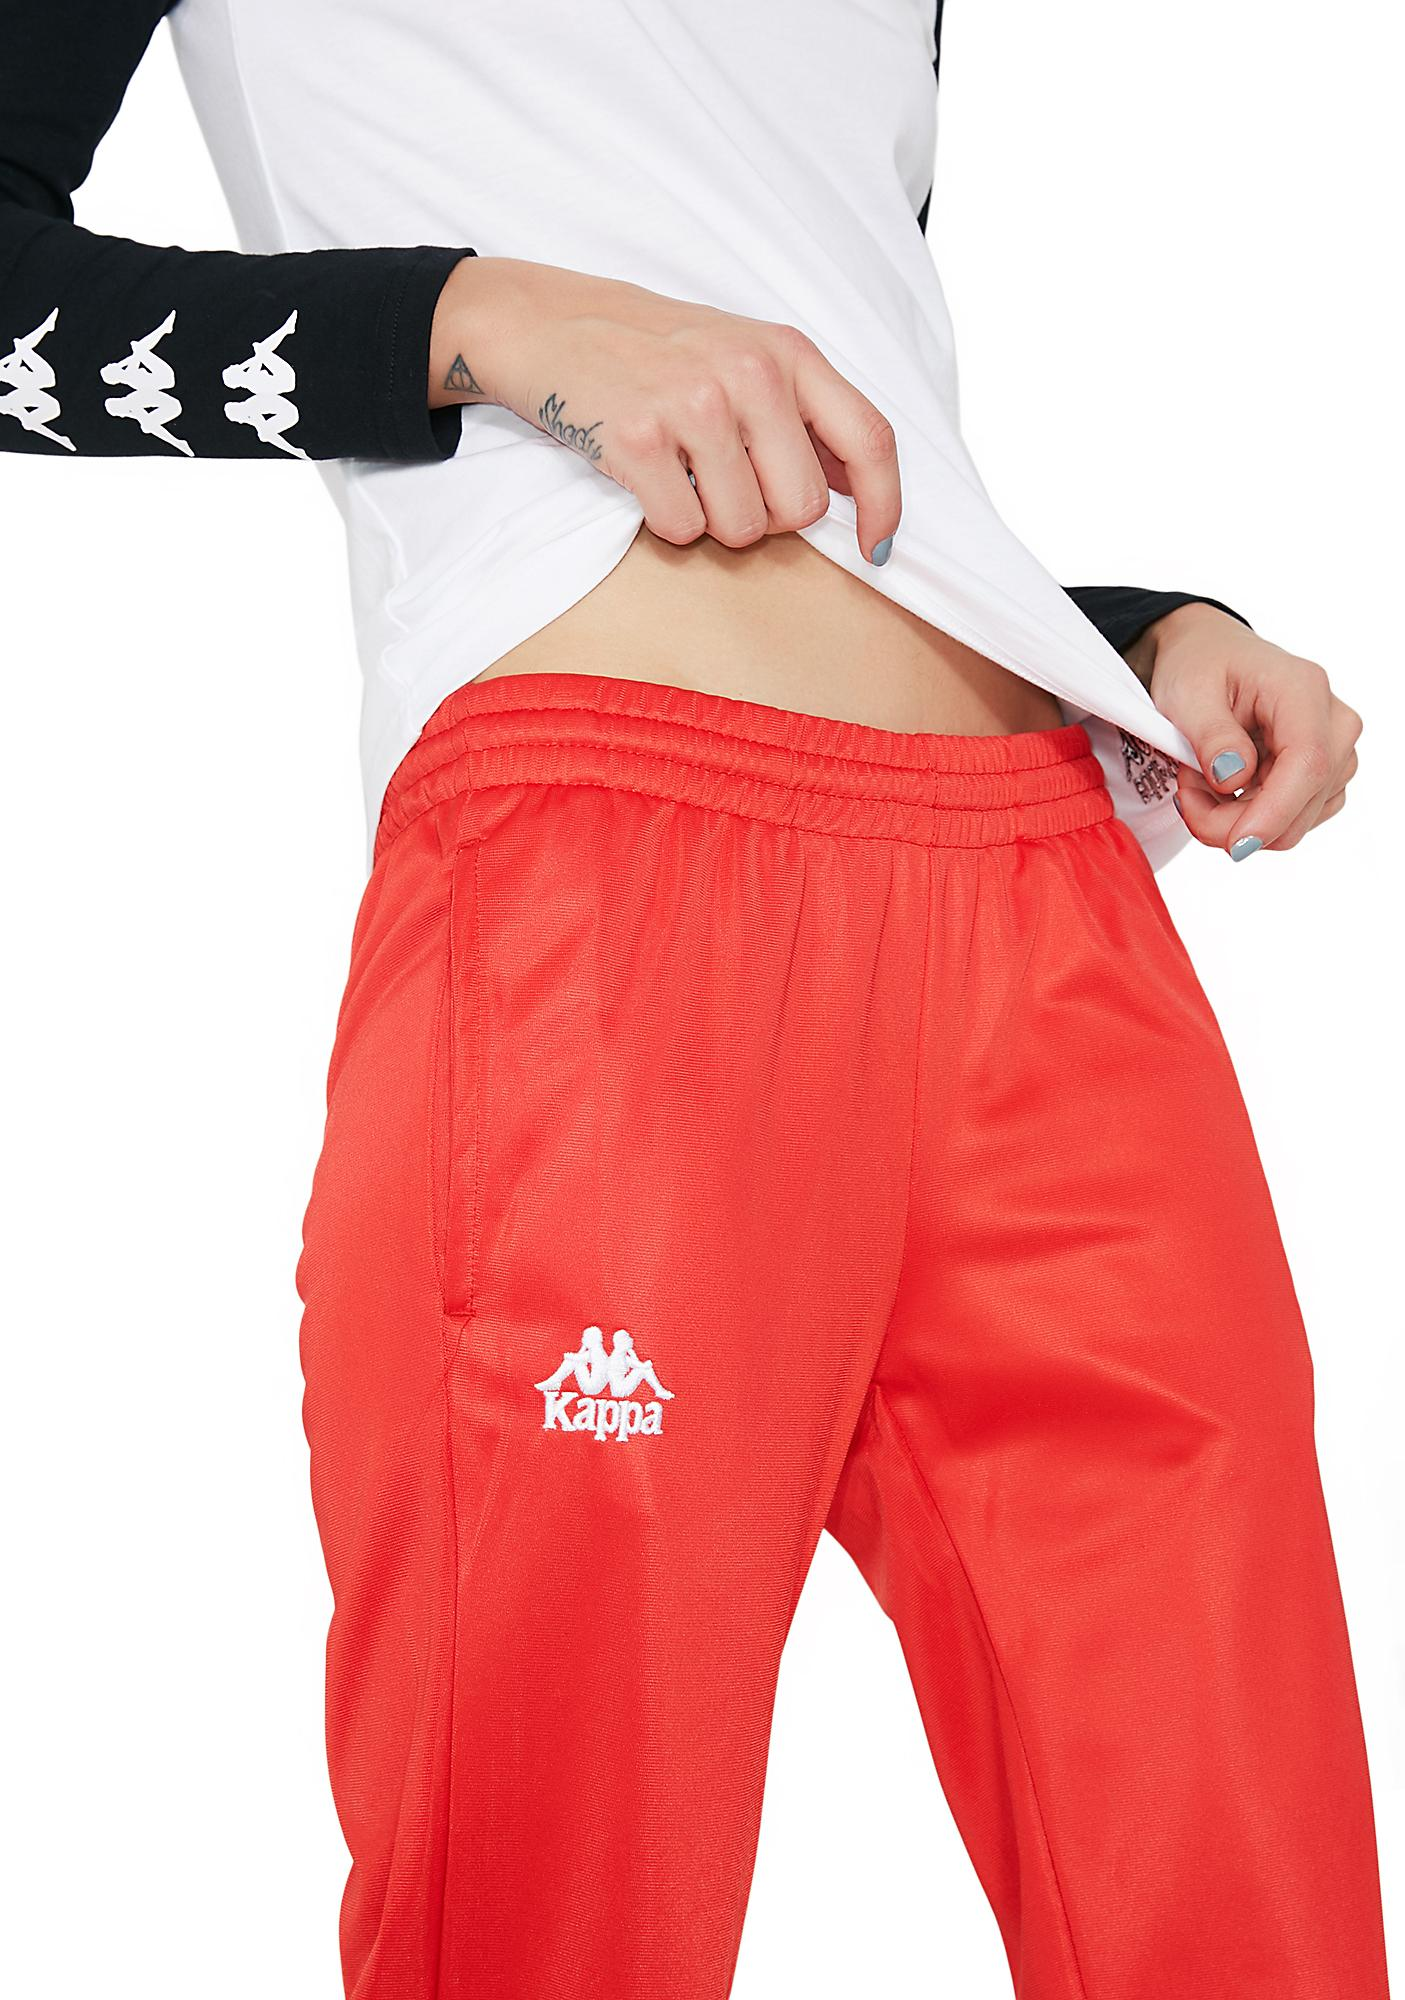 Kappa Hot Authentic Wise Track Pants